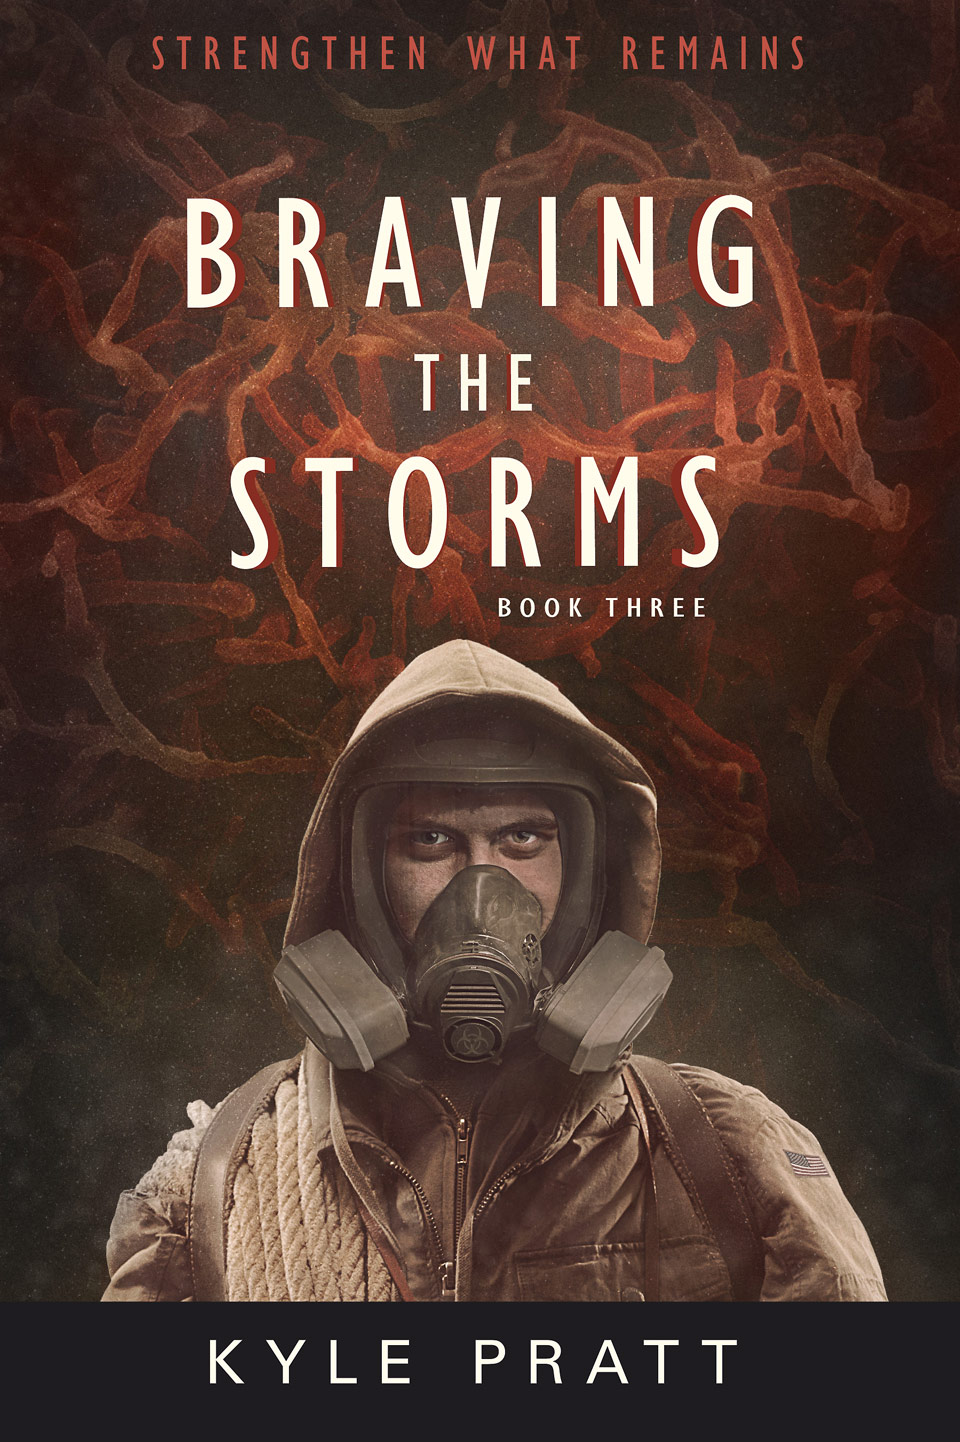 Braving the Storms - book cover design